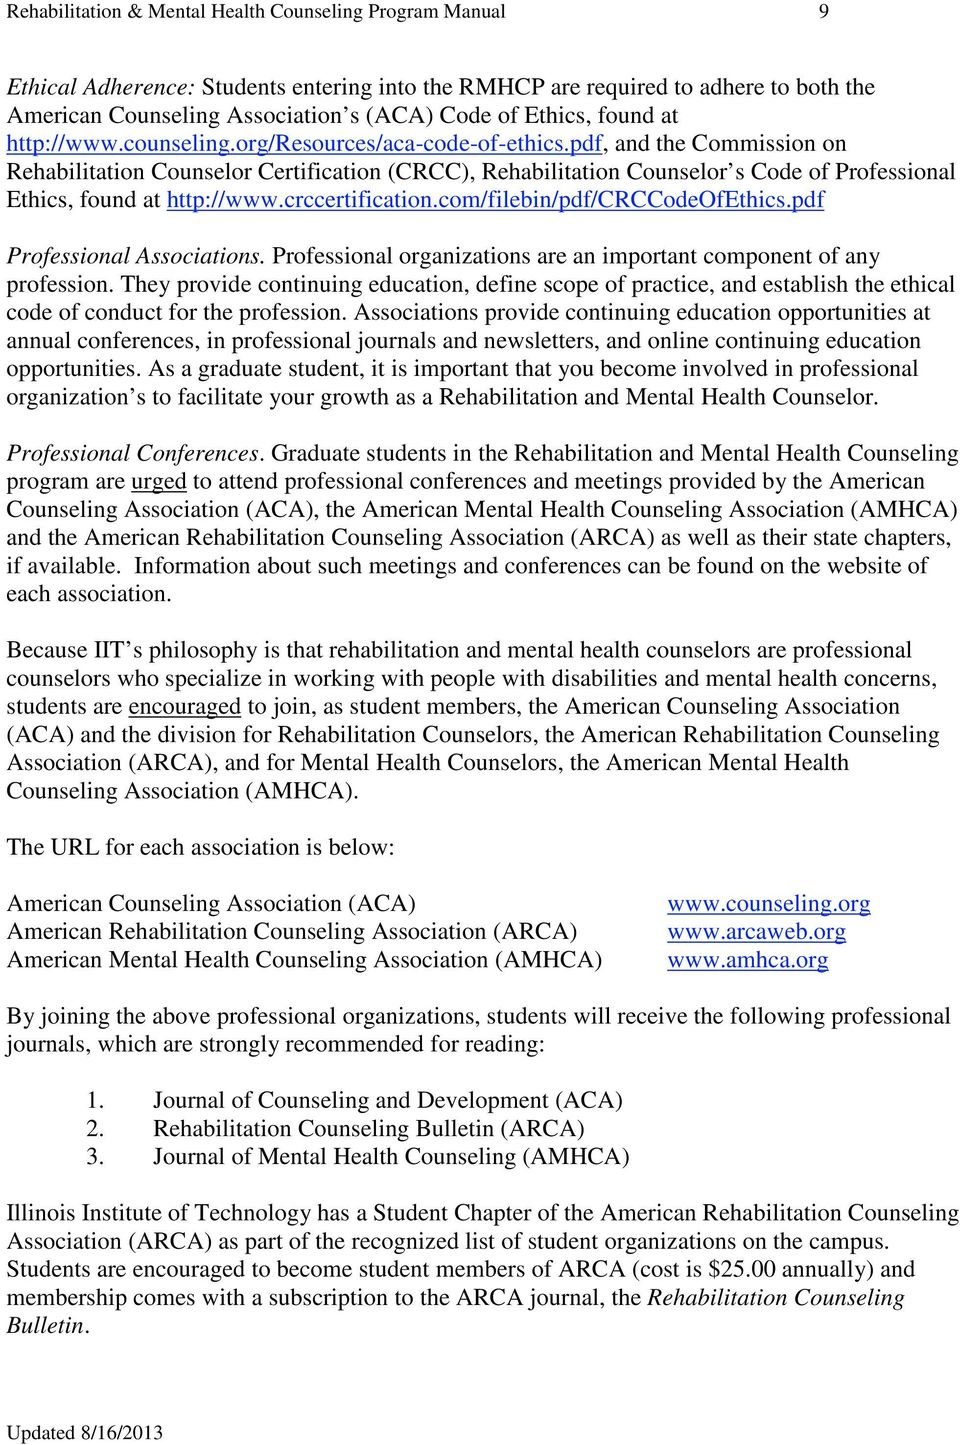 pdf, and the Commission on Rehabilitation Counselor Certification (CRCC), Rehabilitation Counselor s Code of Professional Ethics, found at http://www.crccertification.com/filebin/pdf/crccodeofethics.